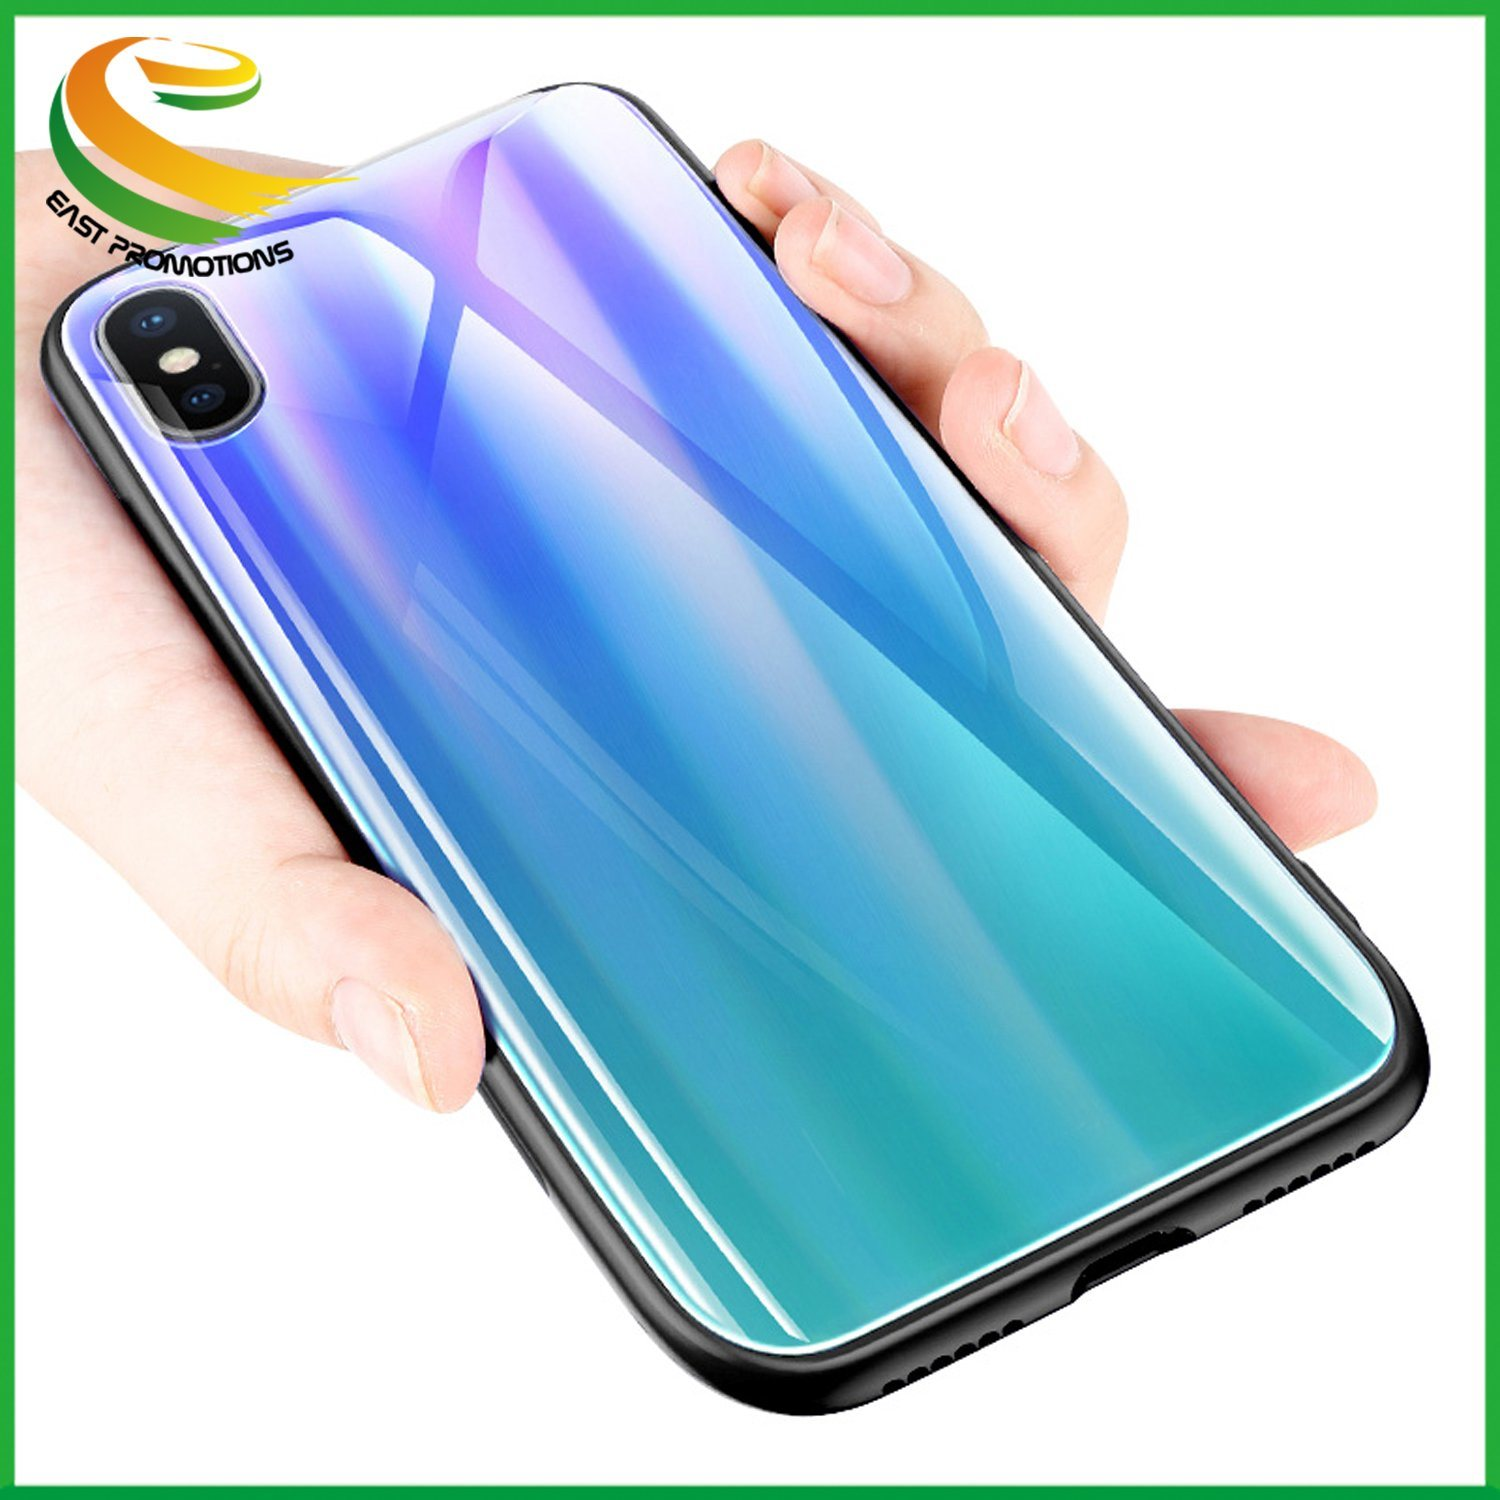 Wholesale Phone Case, Wholesale Phone Case Manufacturers & Suppliers |  Made-in-China com